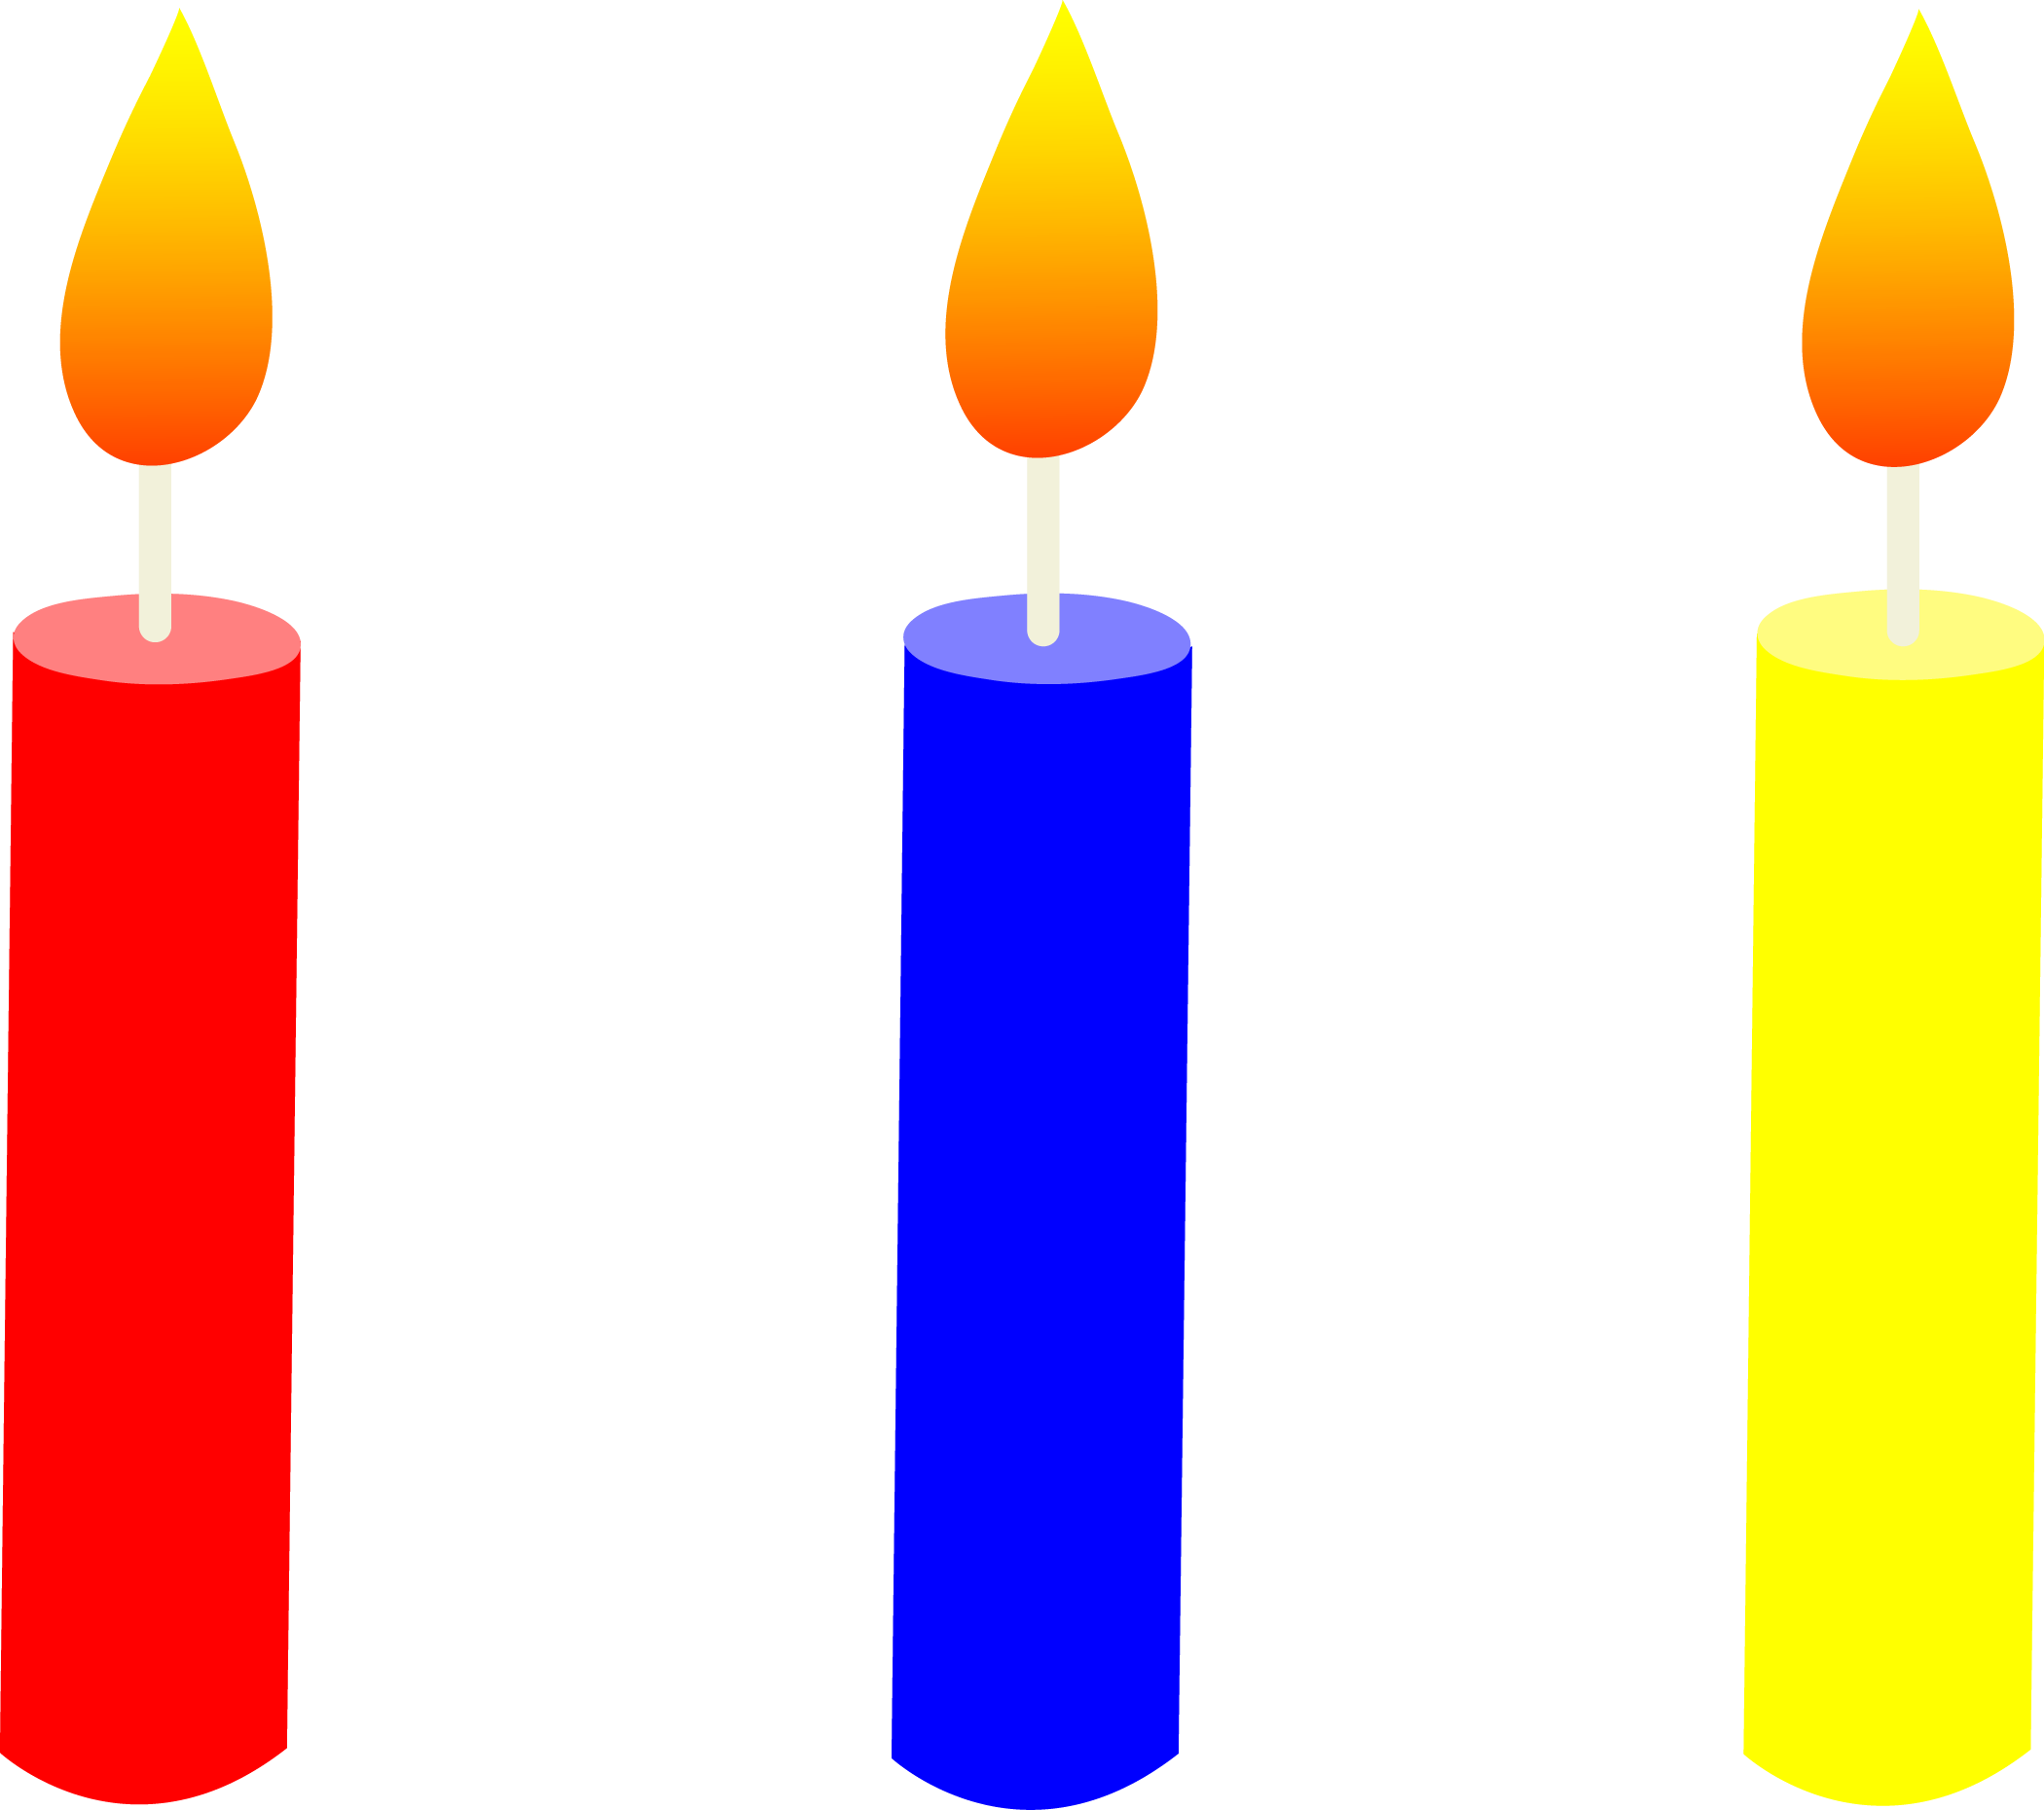 Cake Clip Art Candles : Three Lit Birthday Cake Candles - Free Clip Art